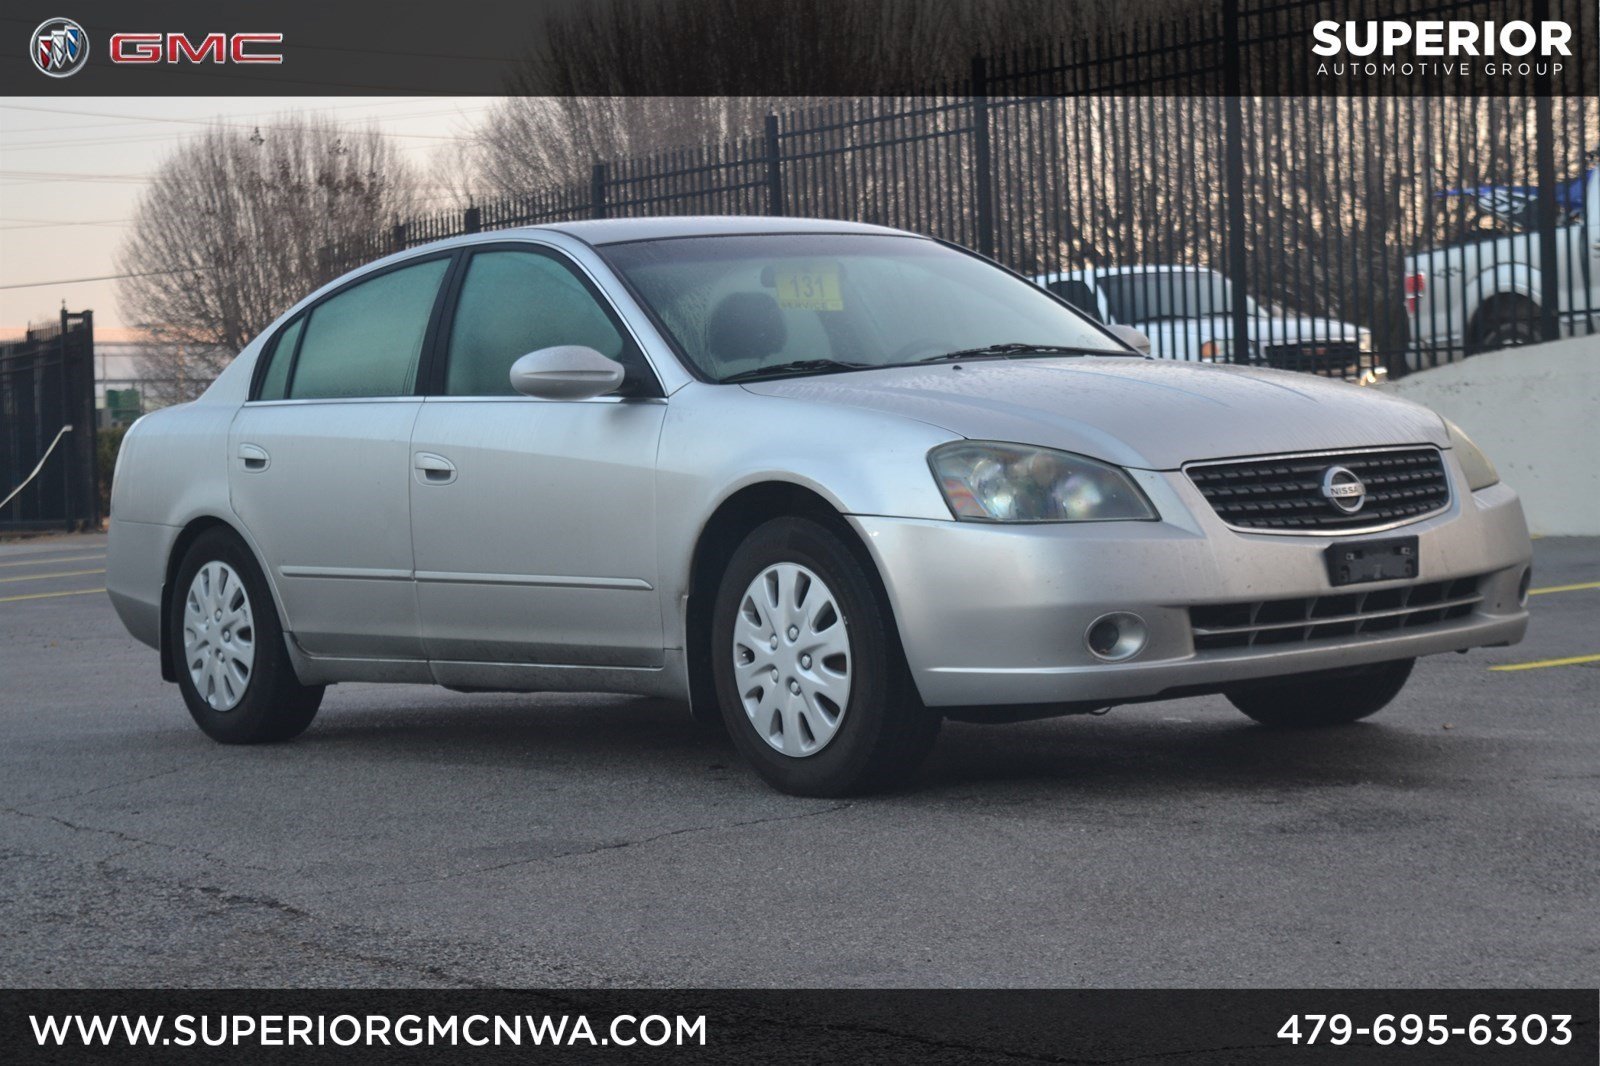 pre-owned 2005 nissan altima 2.5 s 4dr car in fayetteville #gi2441a